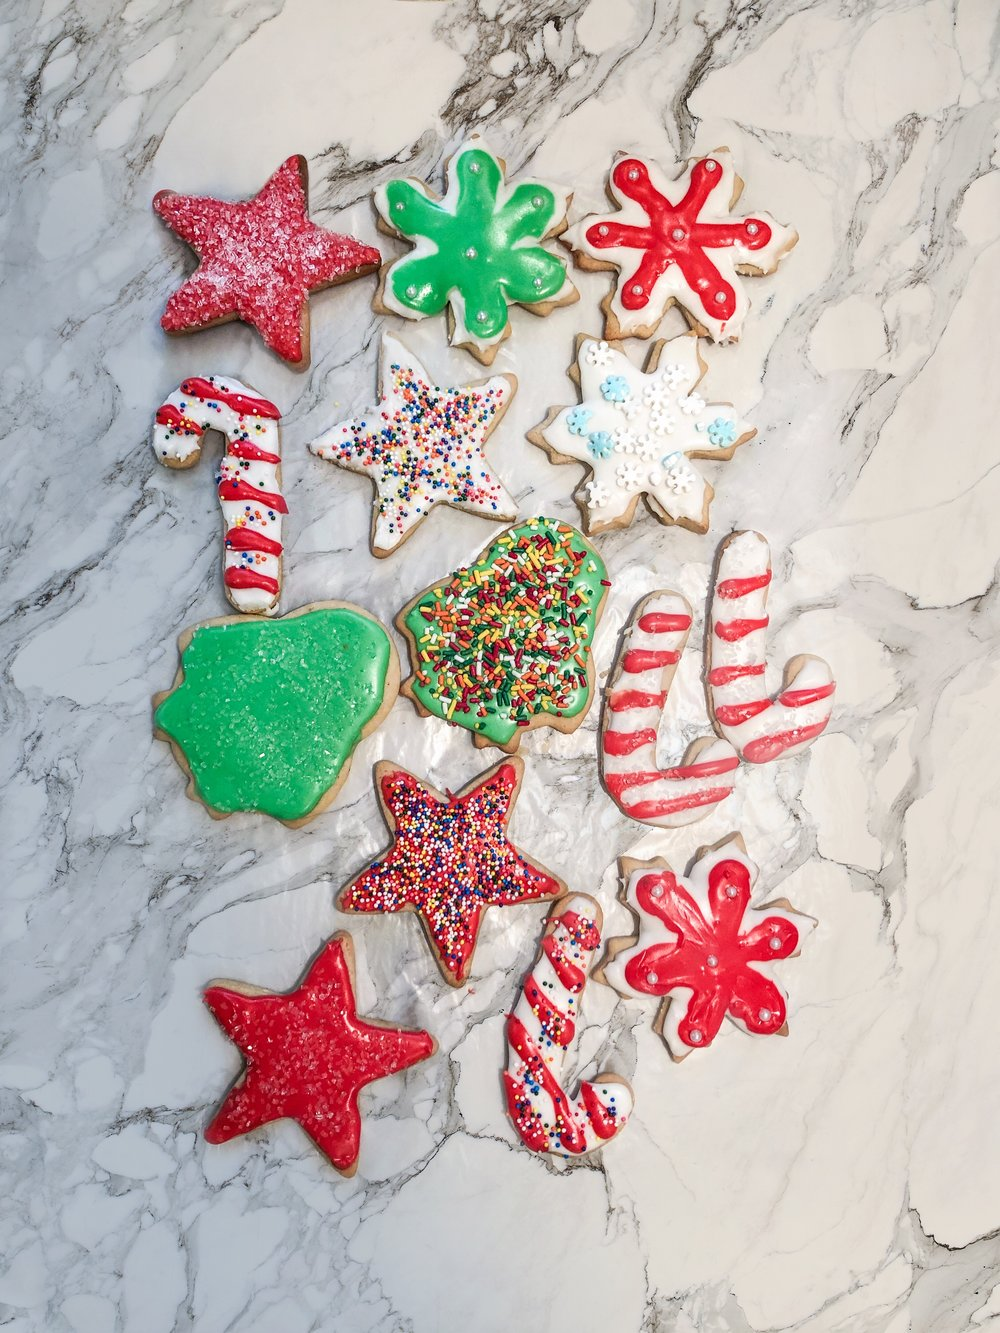 Perfect Cut Out Sugar Cookies - Recipe Below!